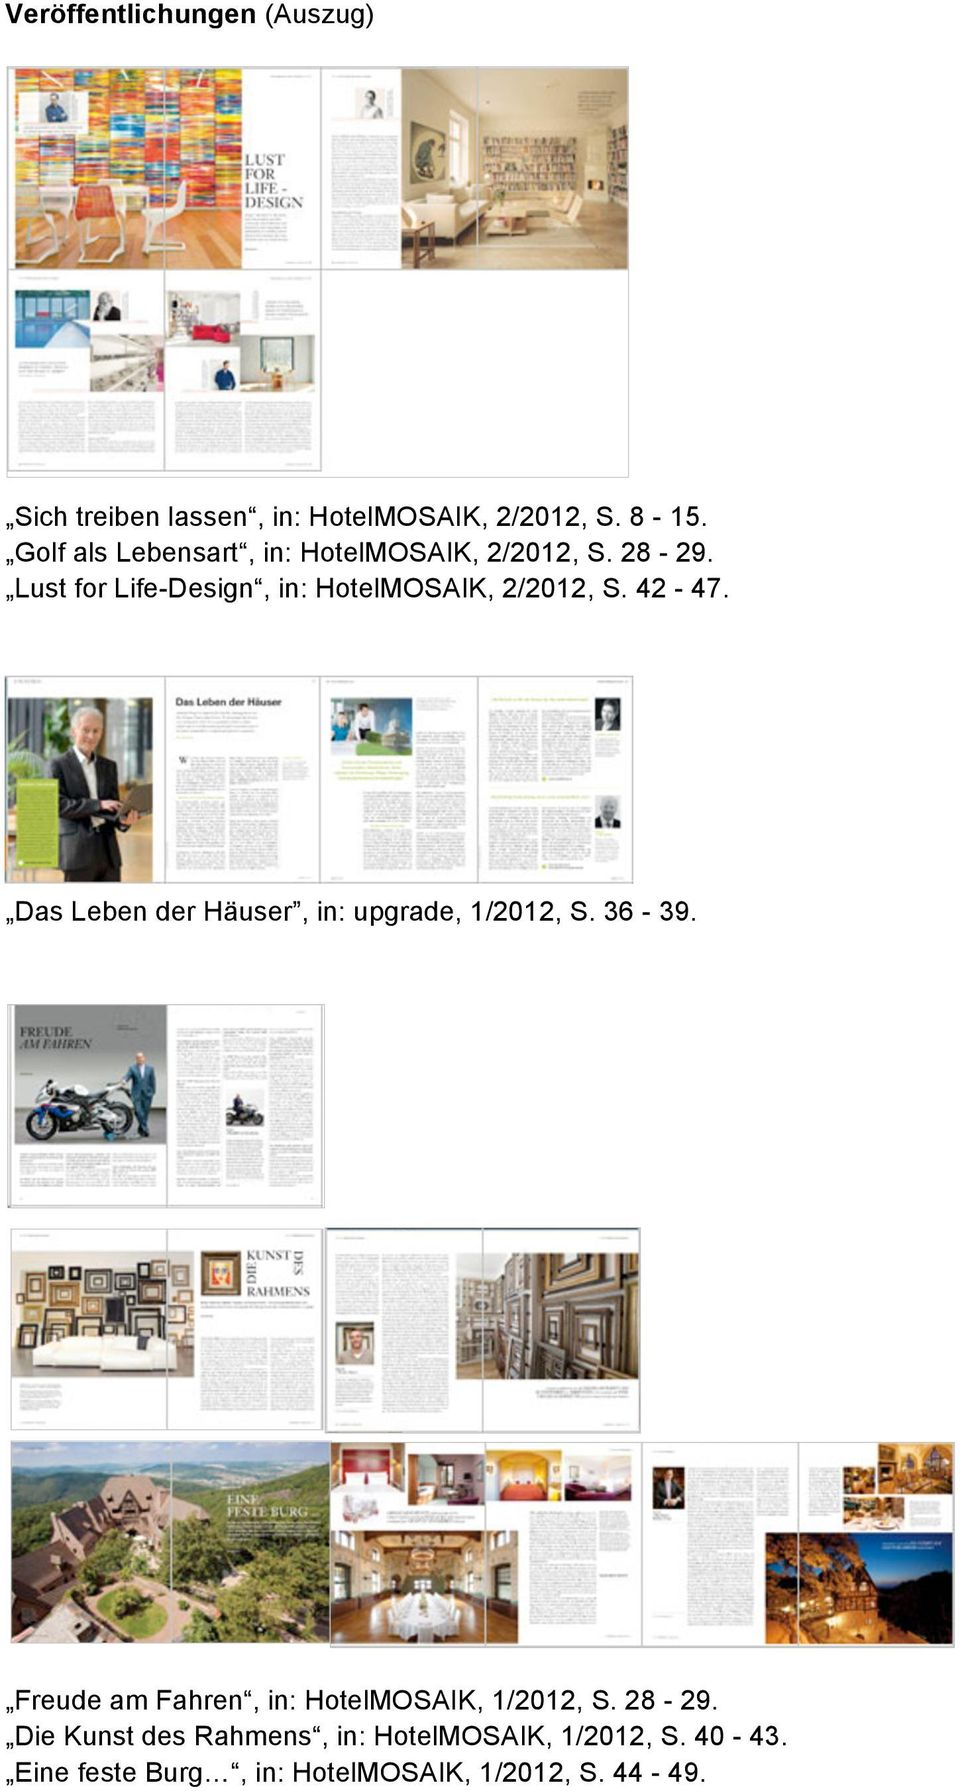 Lust for Life-Design, in: HotelMOSAIK, 2/2012, S. 42-47. Das Leben der Häuser, in: upgrade, 1/2012, S.